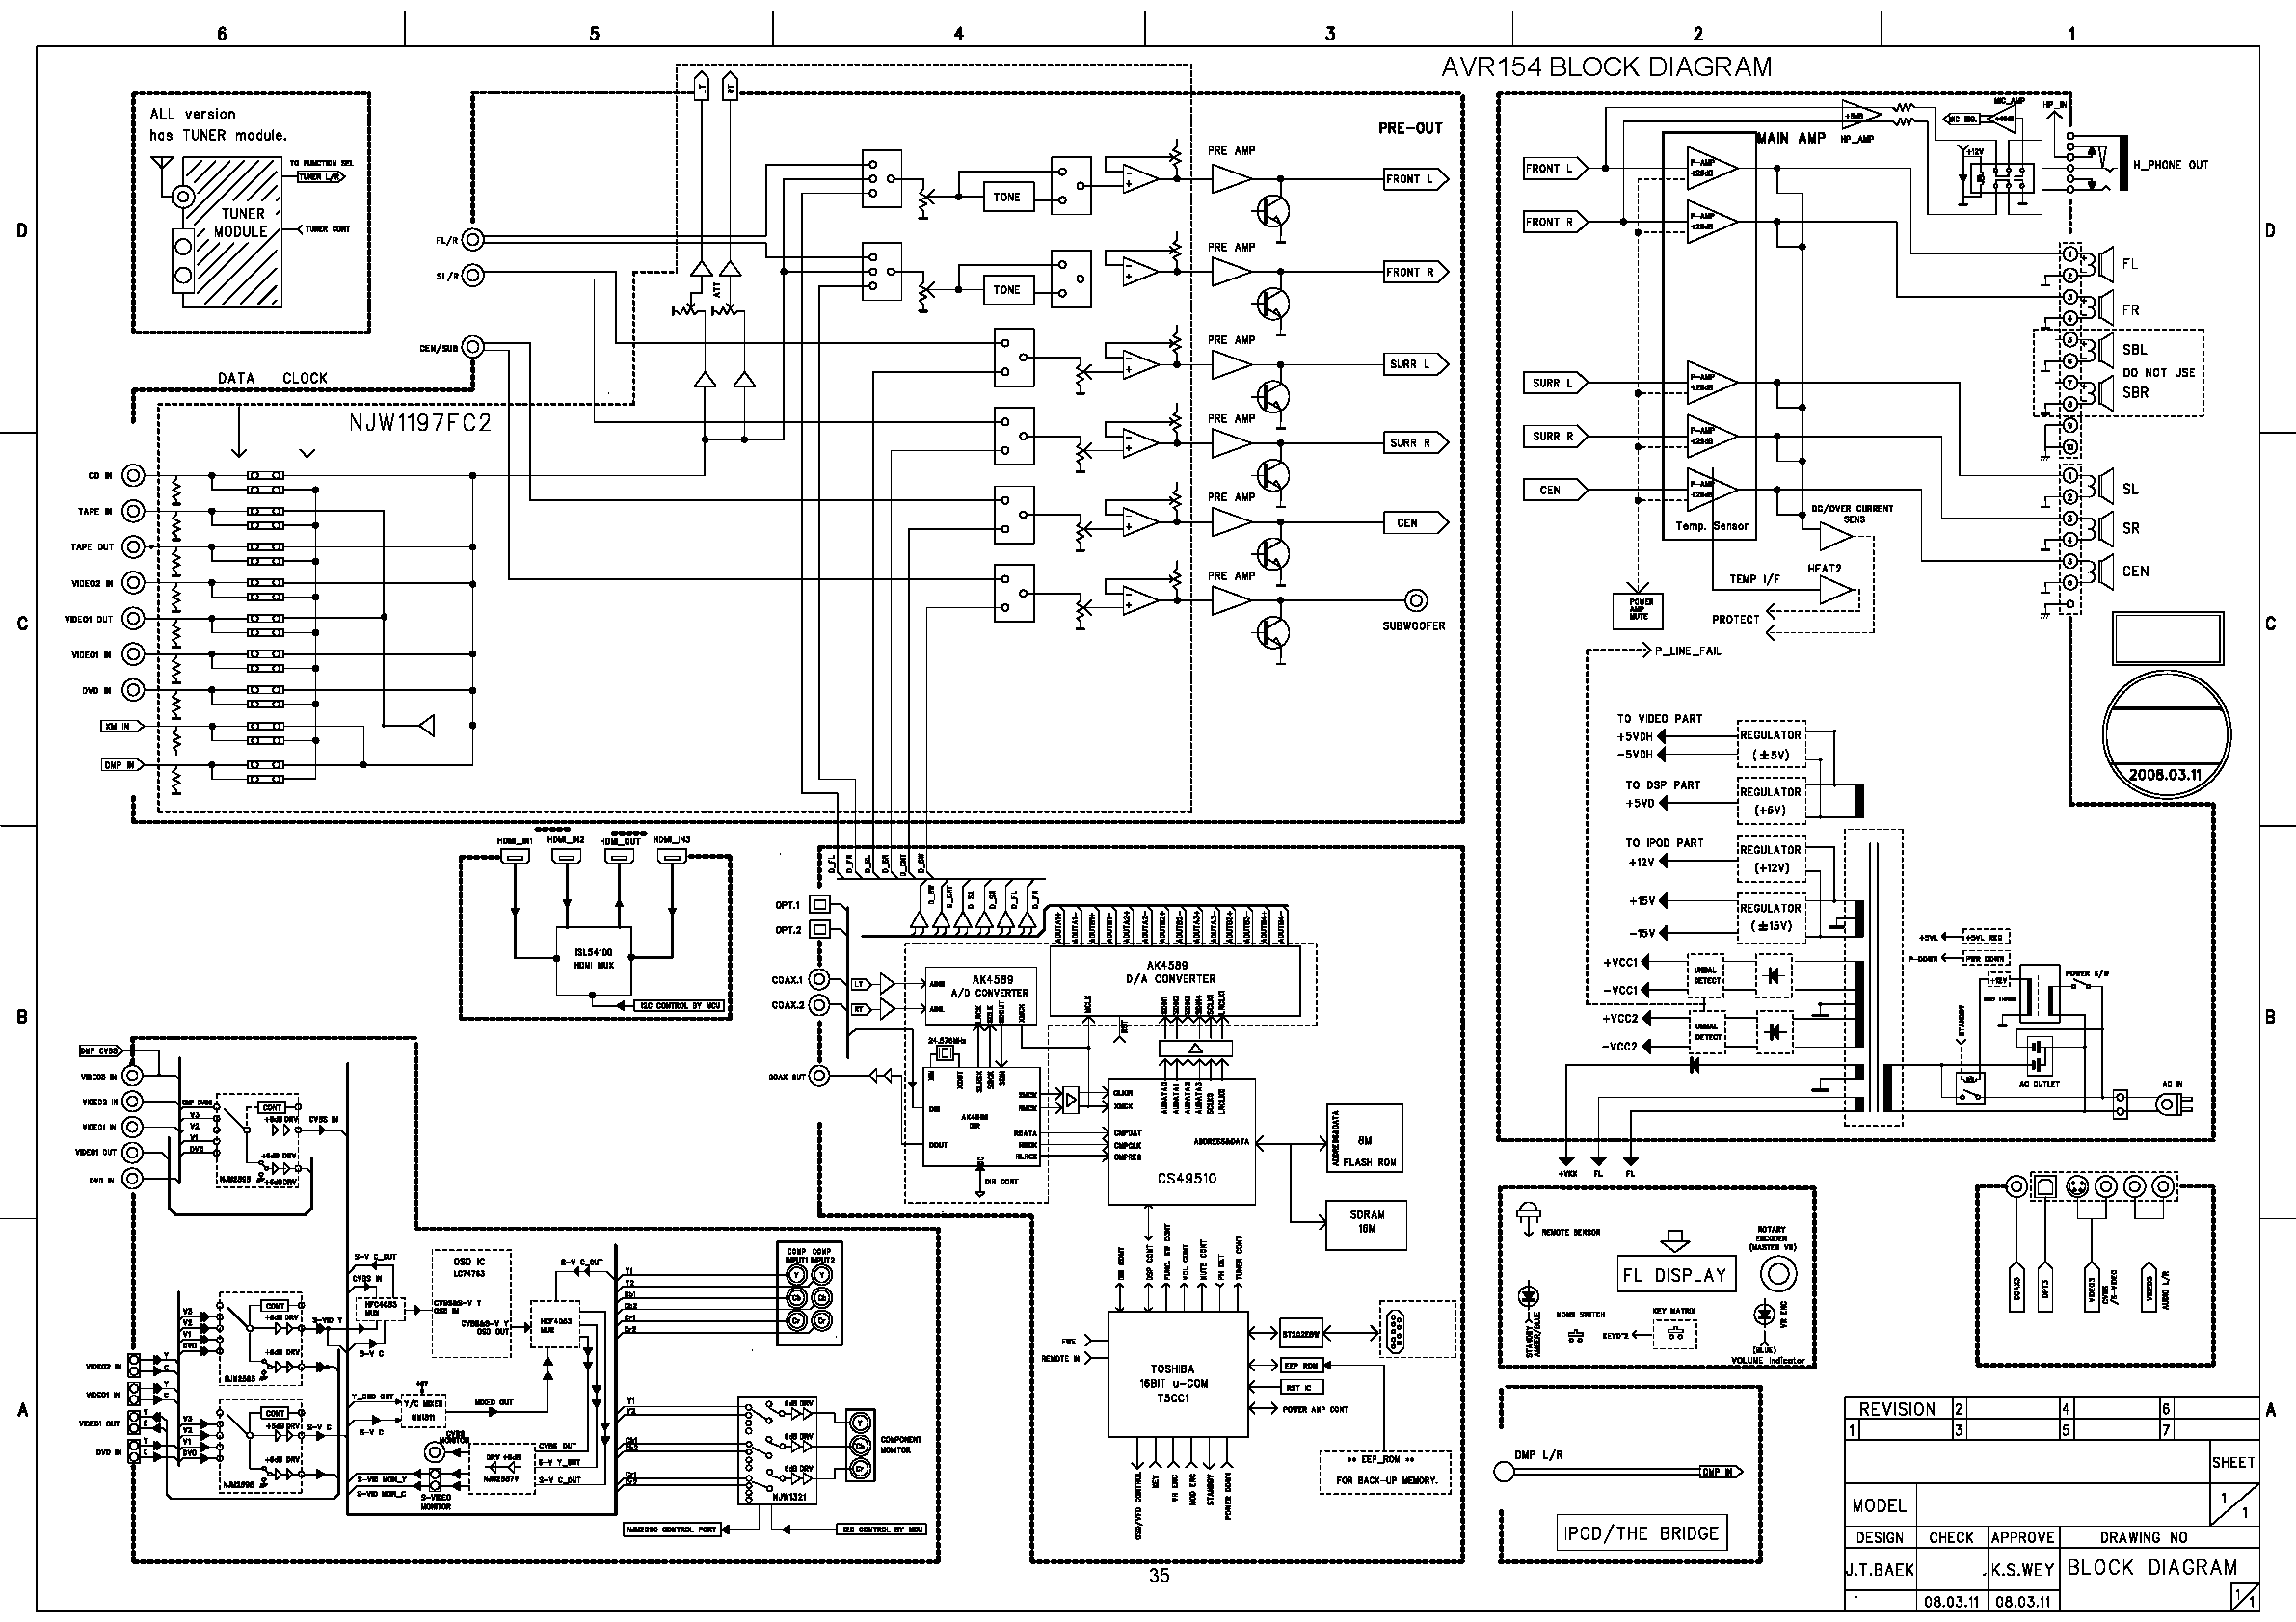 chevy fuel sender wiring diagram get free image about wiring diagram